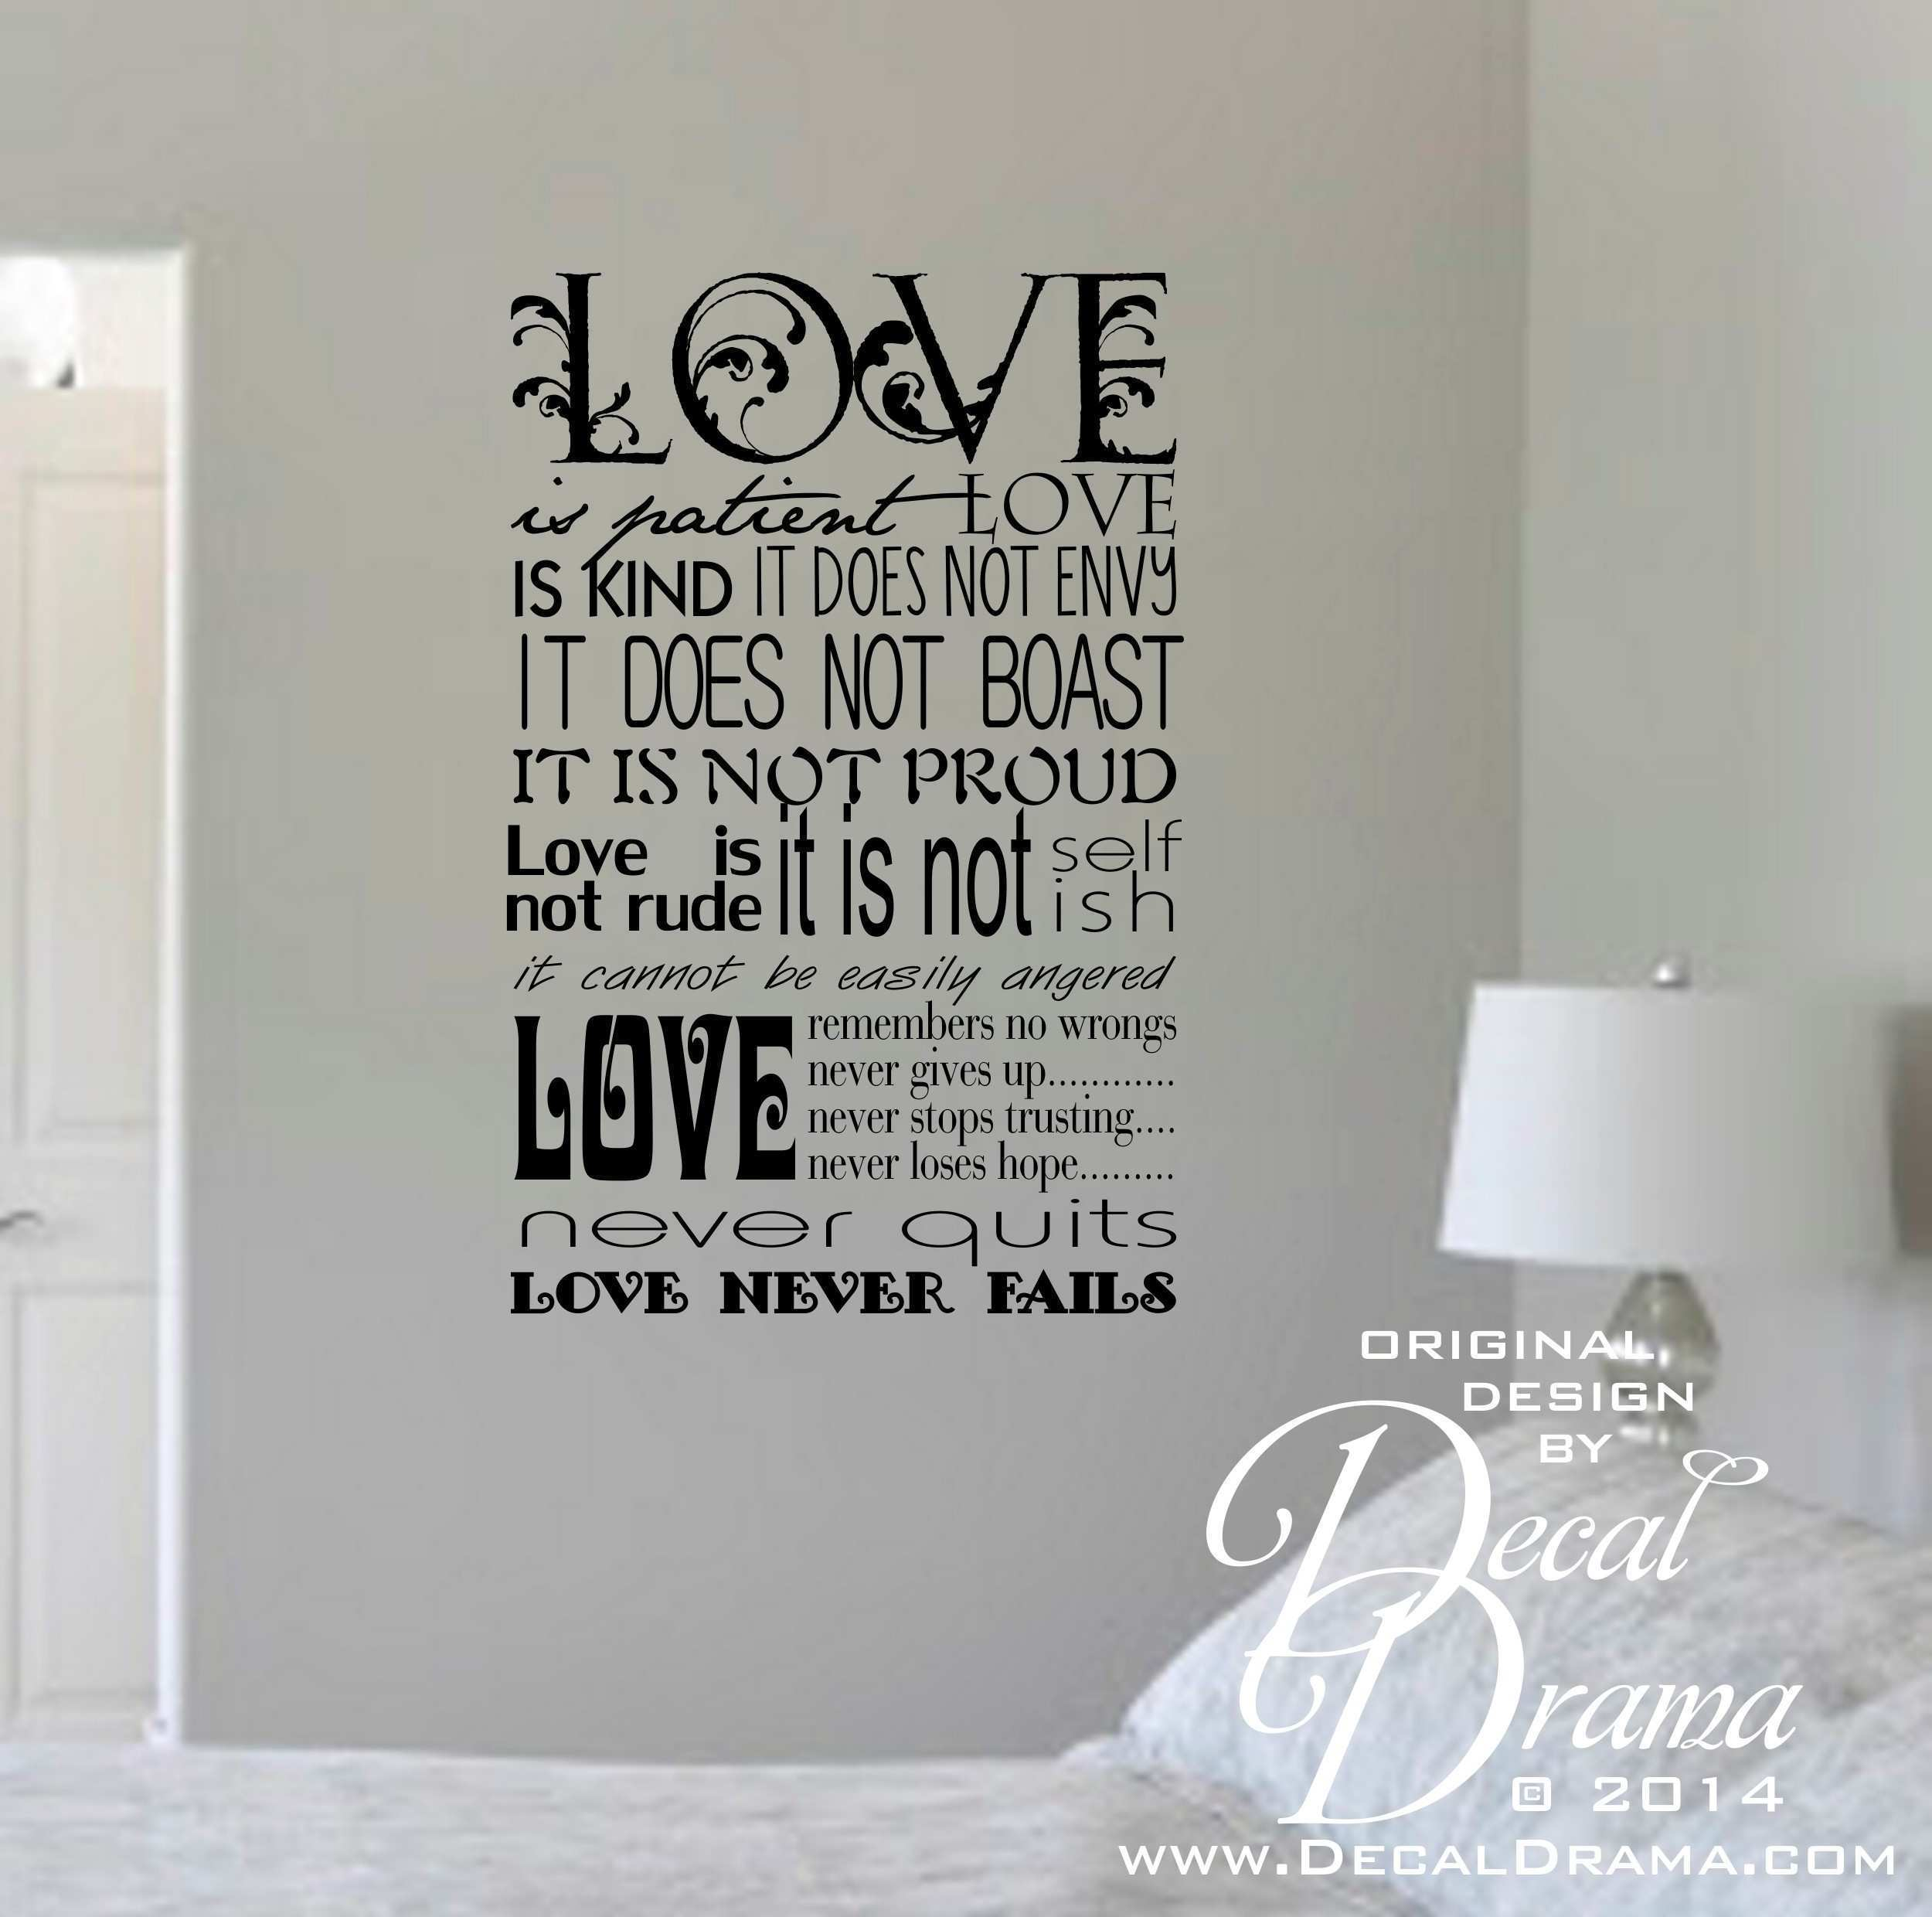 1 Corinthians 13 4 Google Search Design Whiteboard Wall Decal